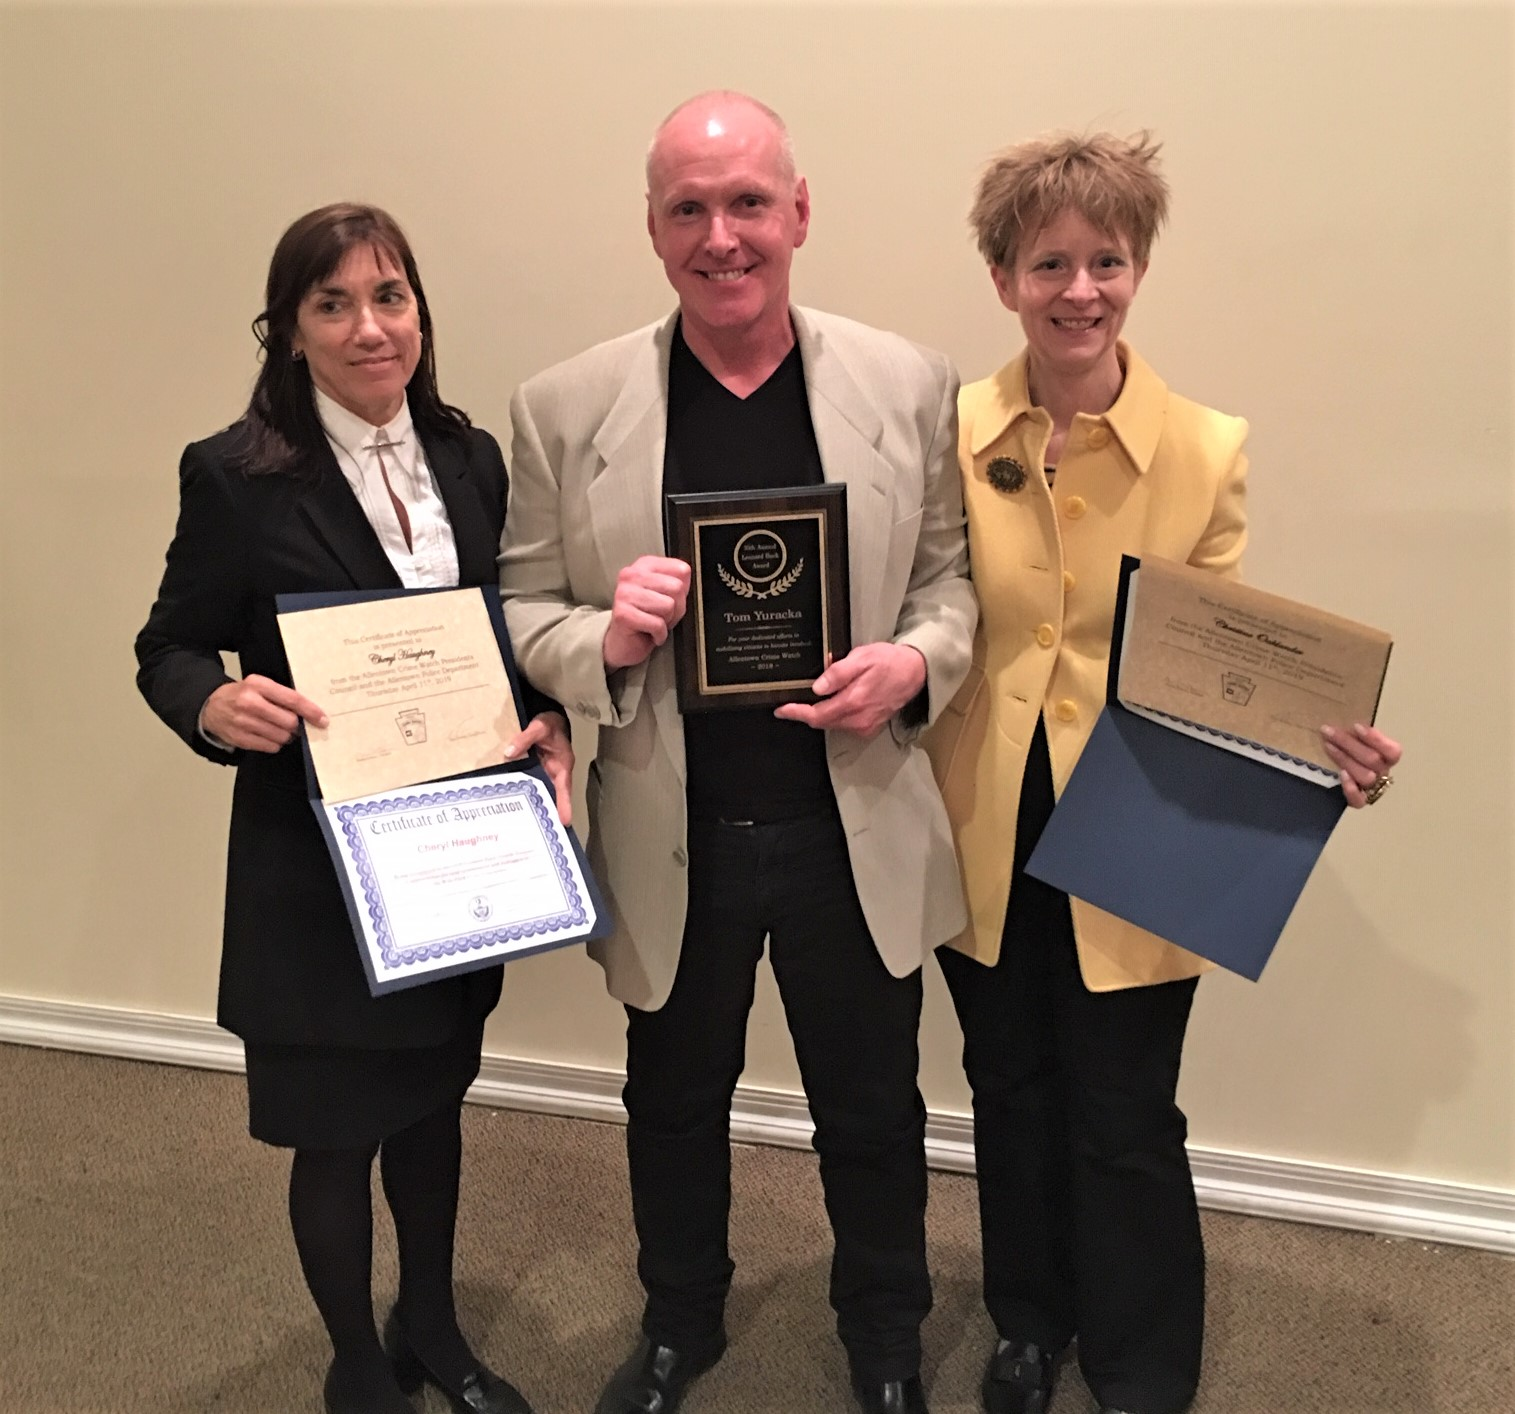 Our Leader, Tom Yuracka - Leonard Buck Award   Christine Oaklander & Cheryl Haughney - Certificates of Appreciation